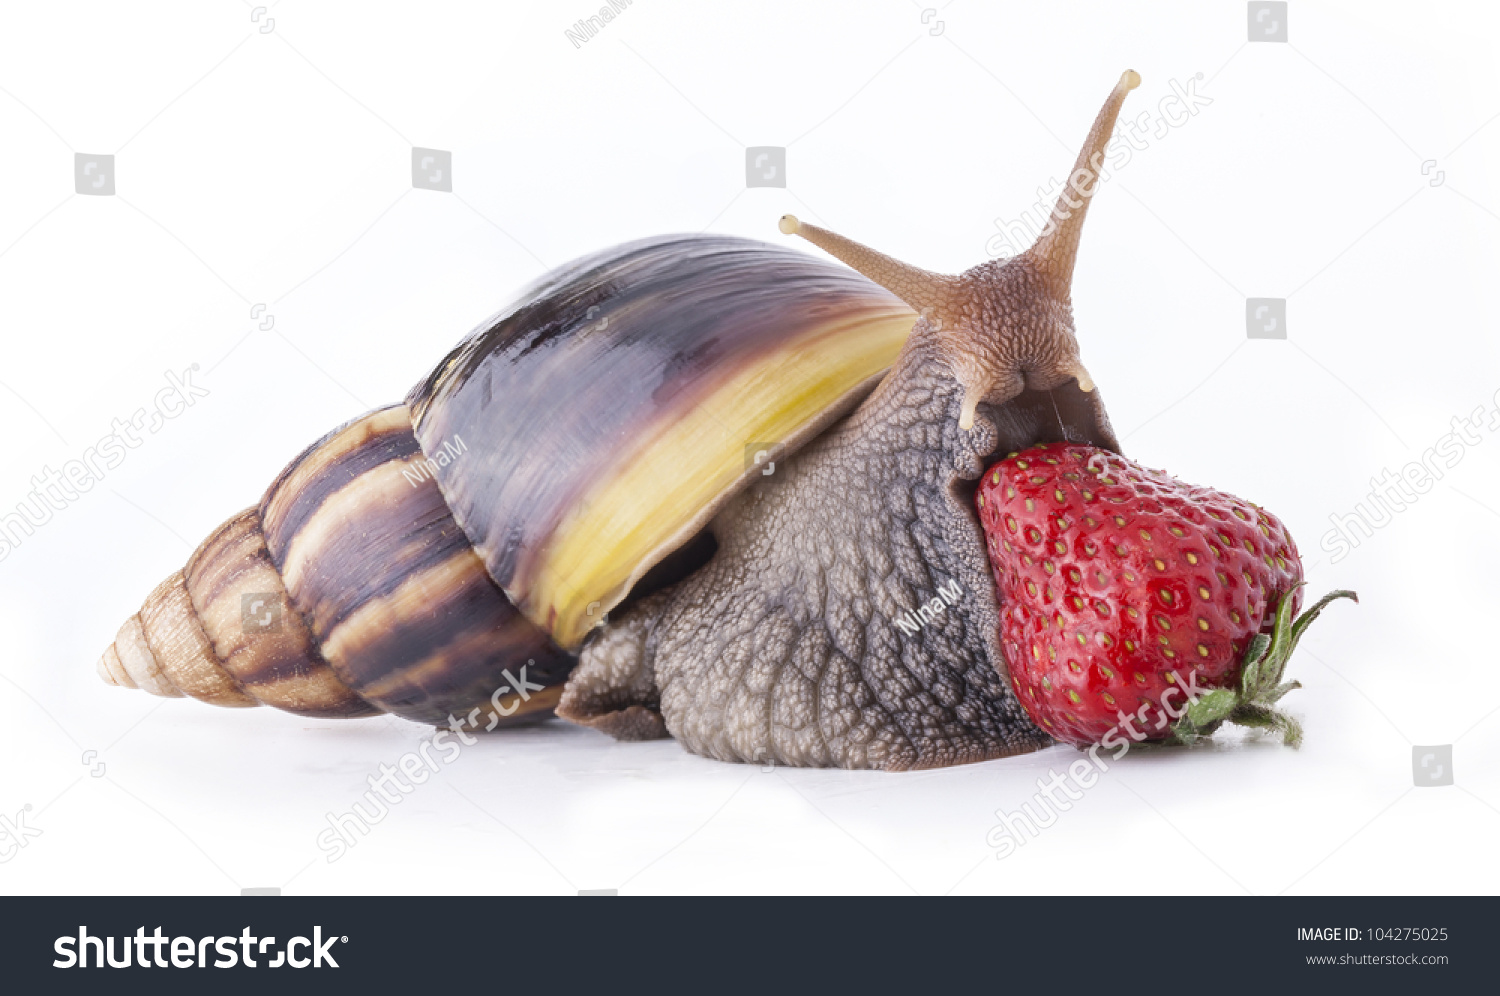 Giant african land snail eating - photo#11